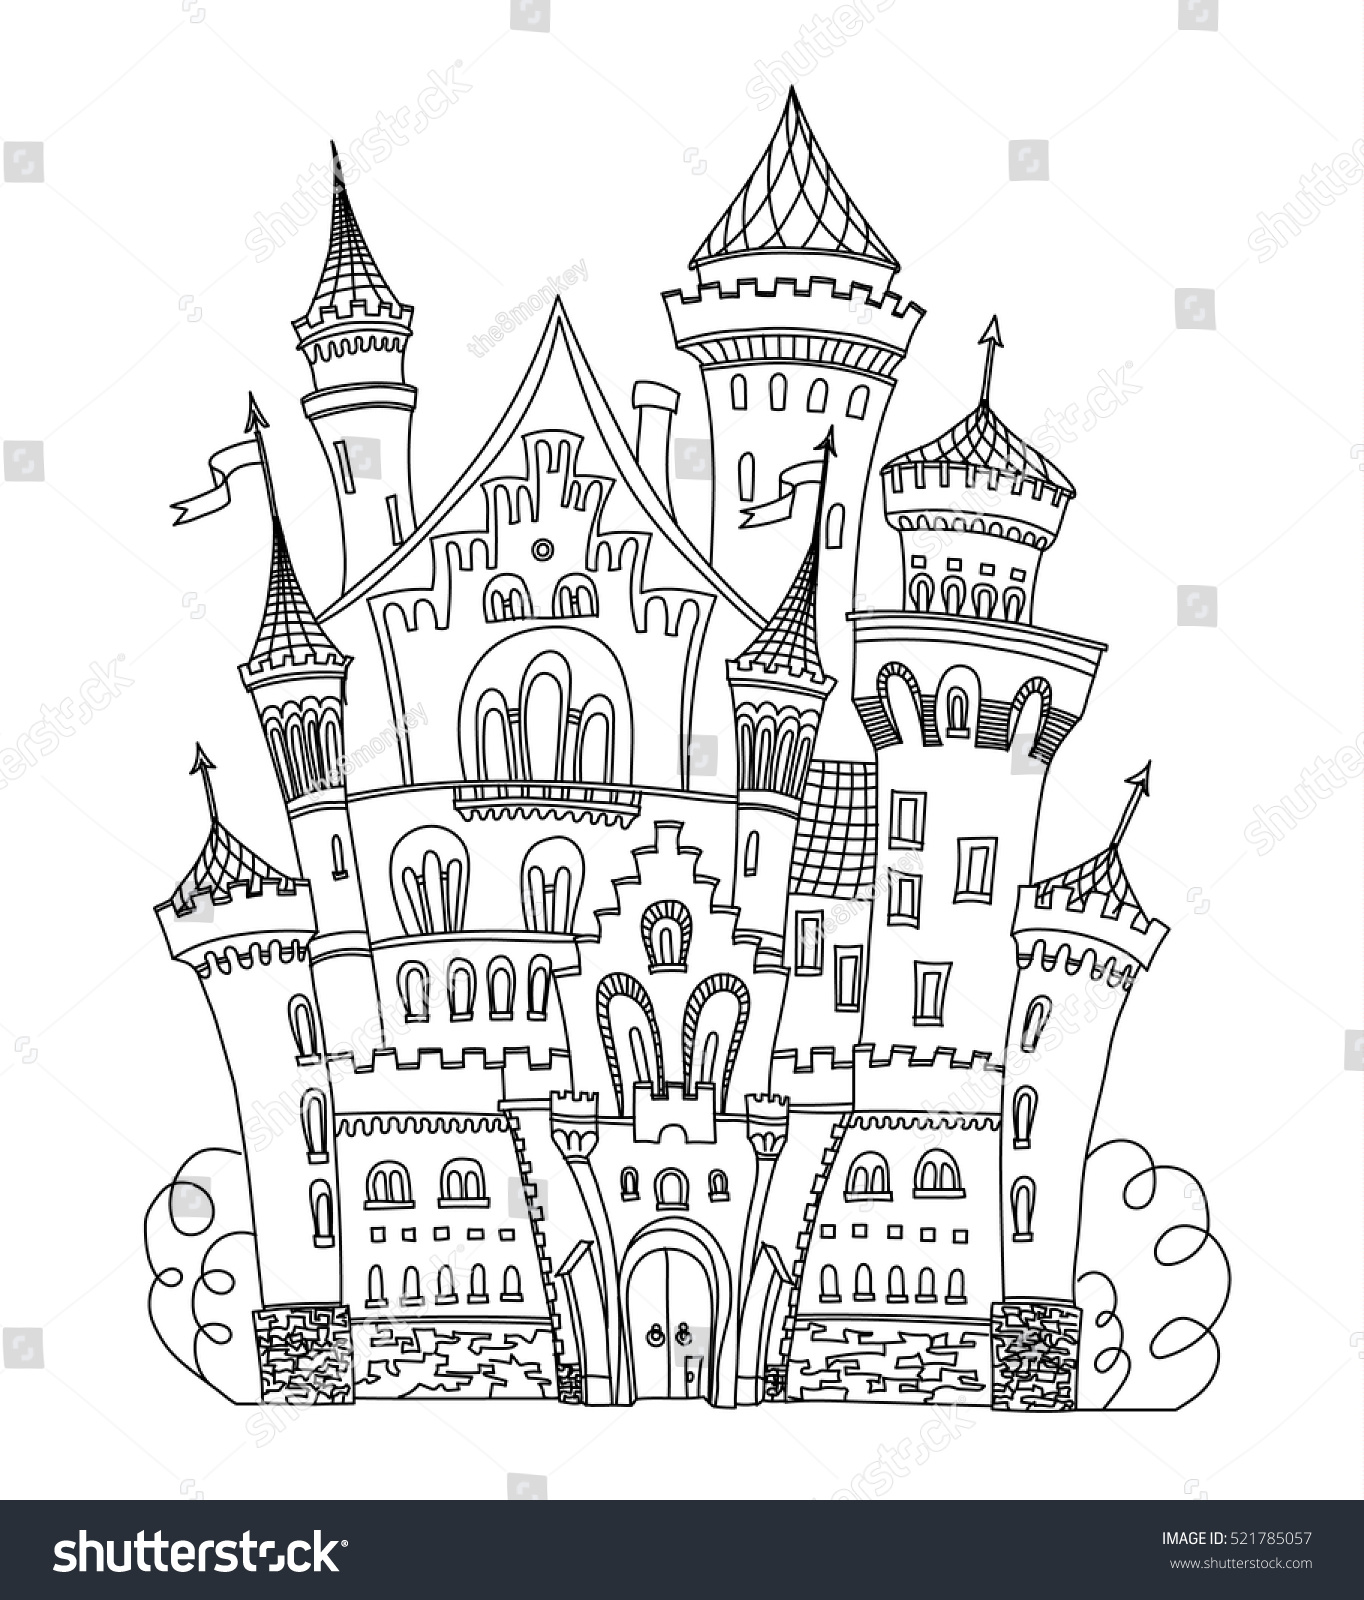 Coloring book landmark for adults - Castle Coloring Book For Adults And Children Vector Illustration Anti Stress Coloring For Adult